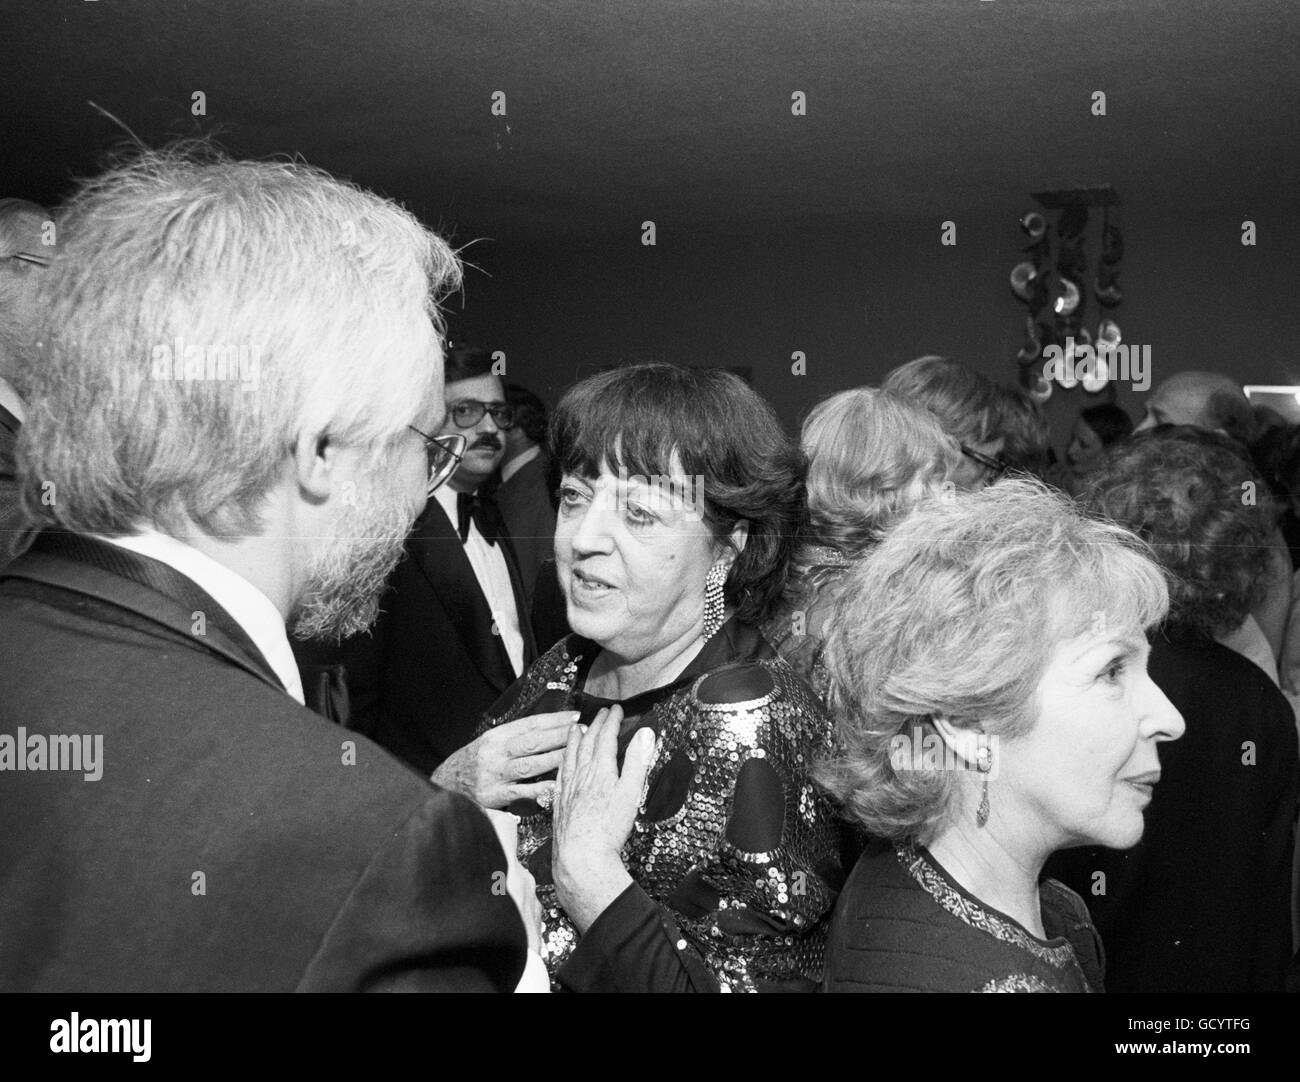 Lucy Freeman, author, at a party hosted by the Mystery Writers of America - Stock Image